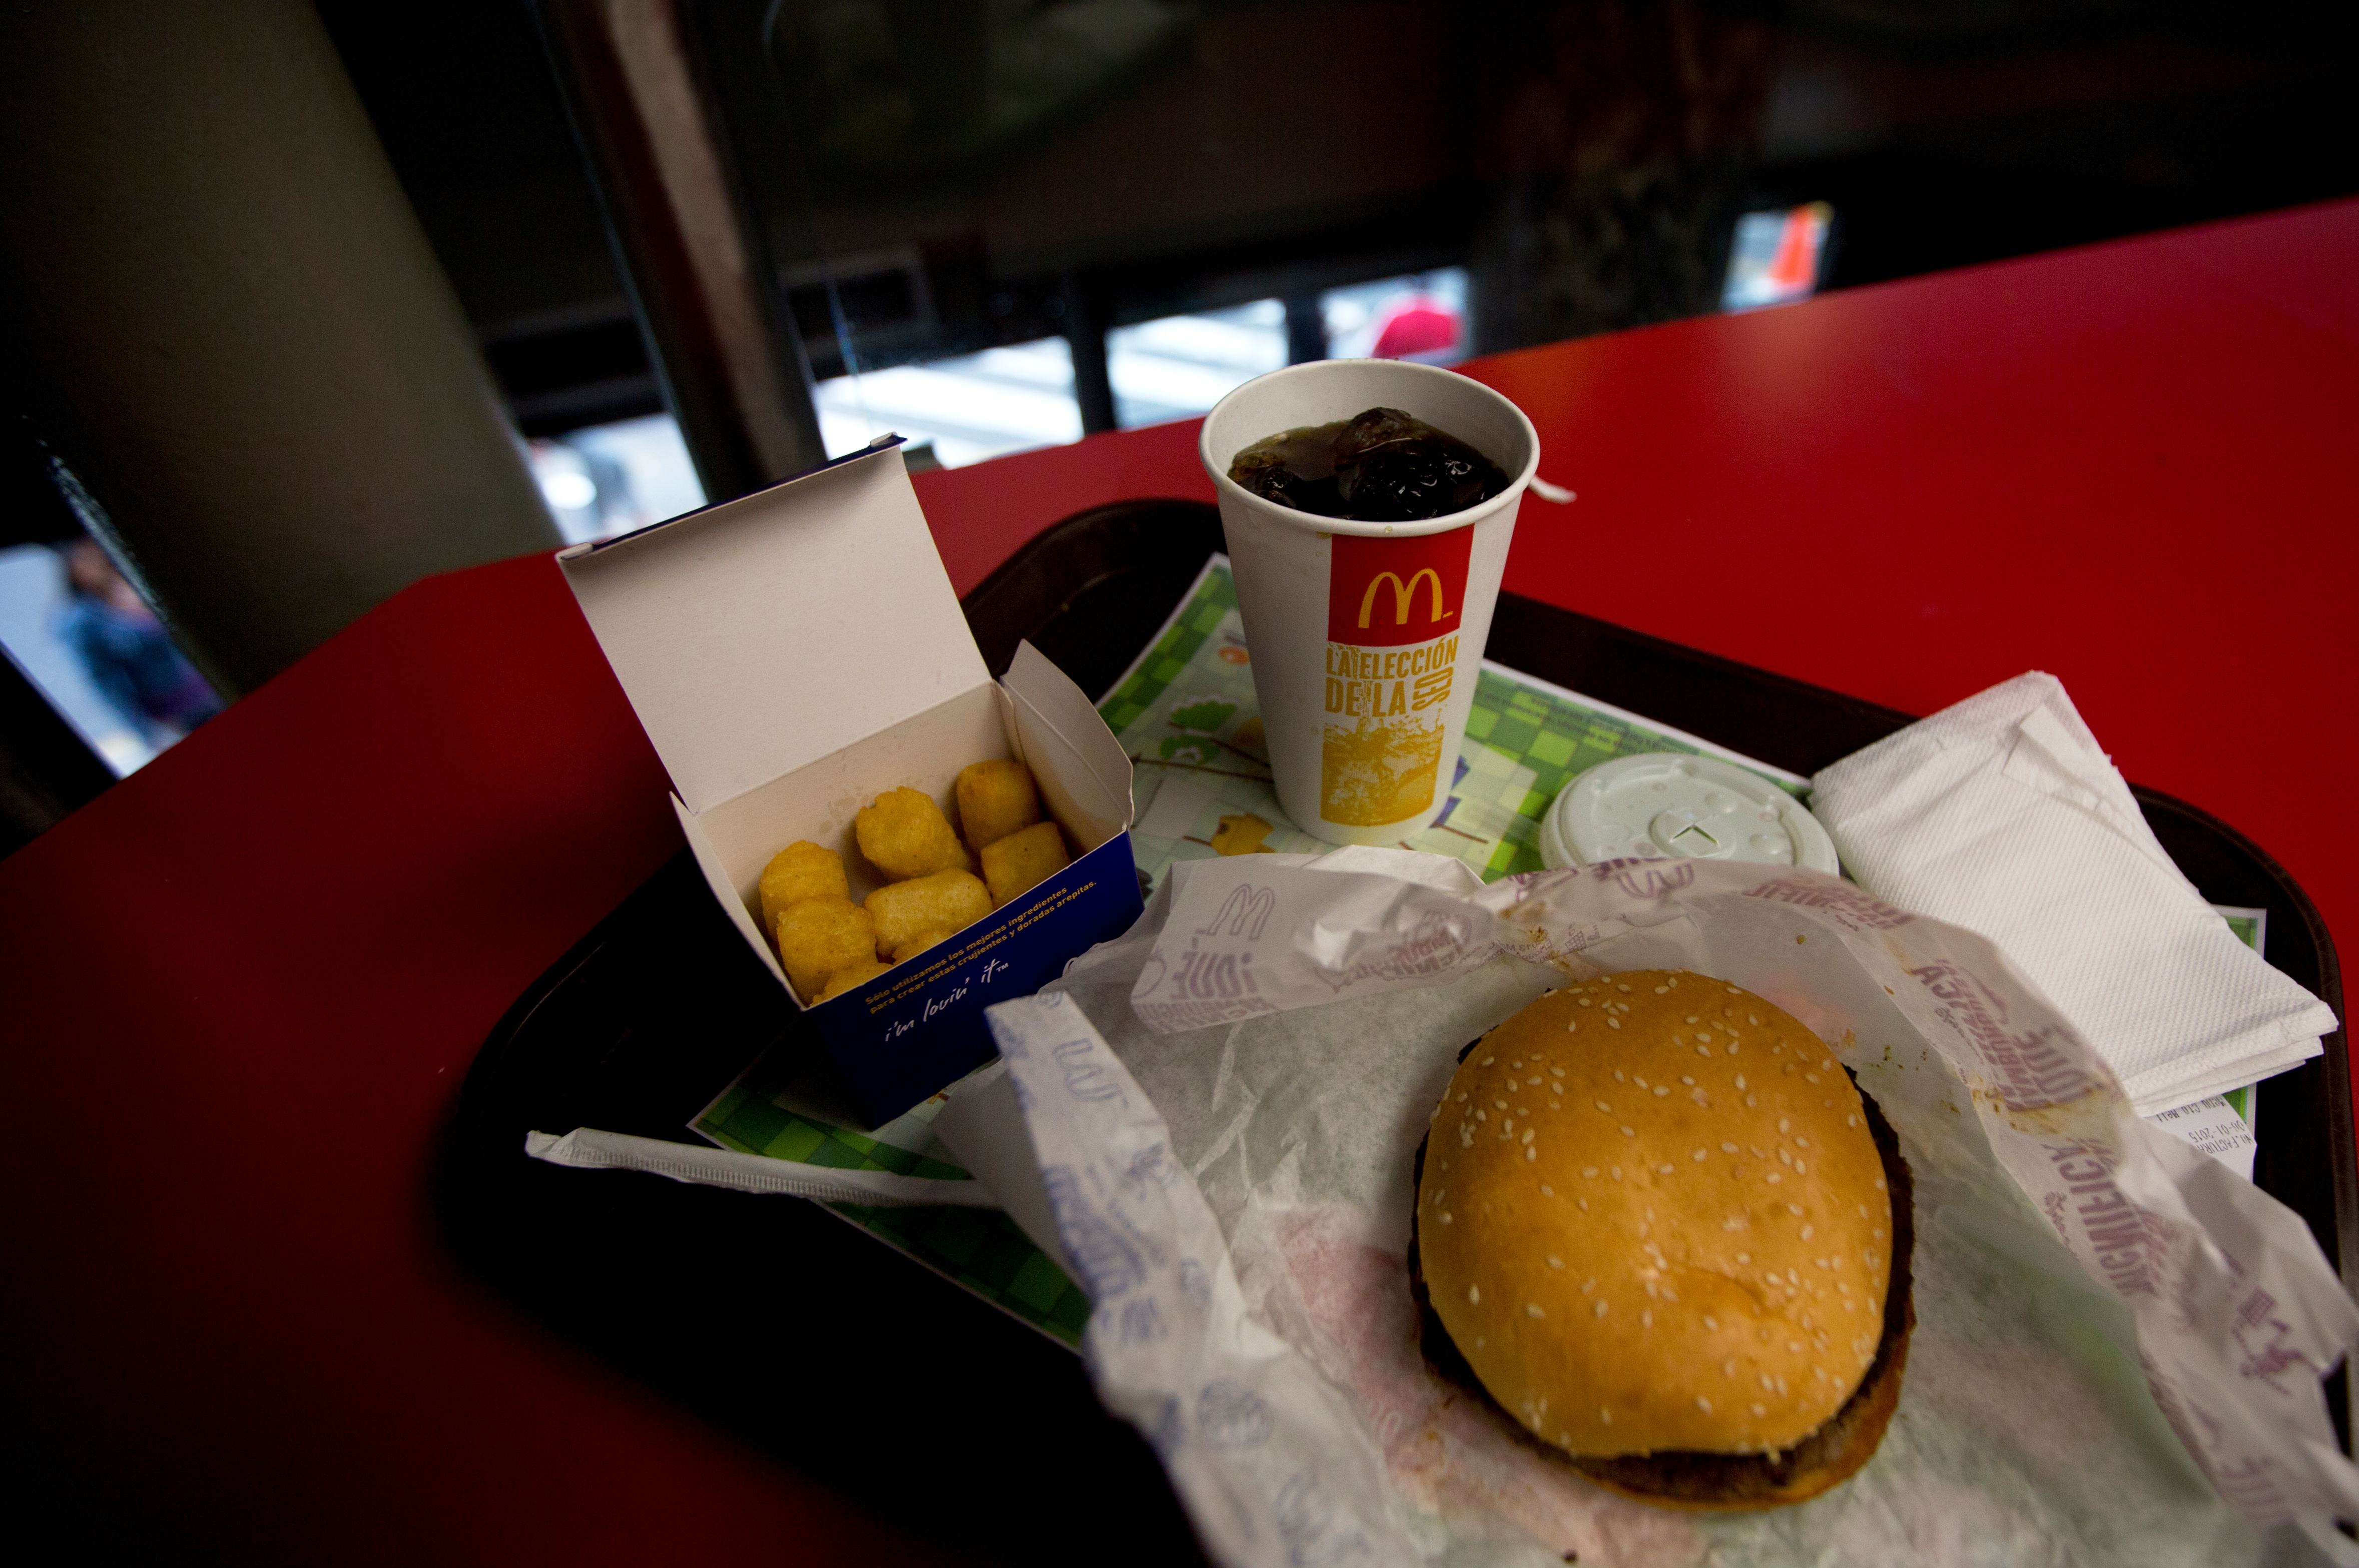 A Quarter Pounder meal is served with arepas or corn cakes at a local McDonald's, in Caracas, Venezuela, on Jan. 6, 2015.